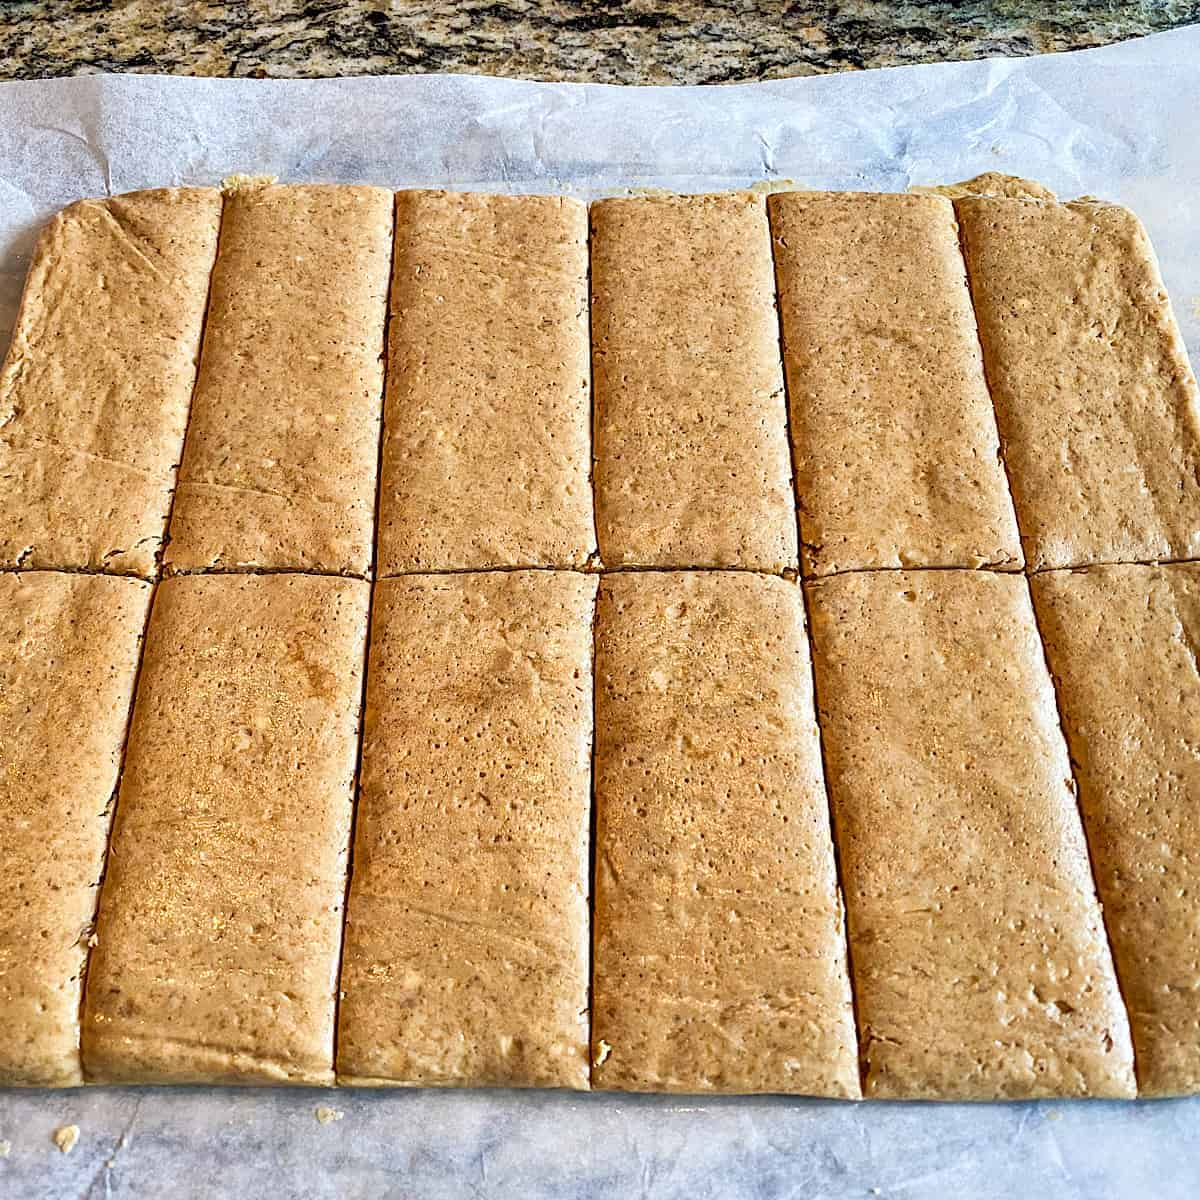 Dough divided into 12 bars placed on parchment paper